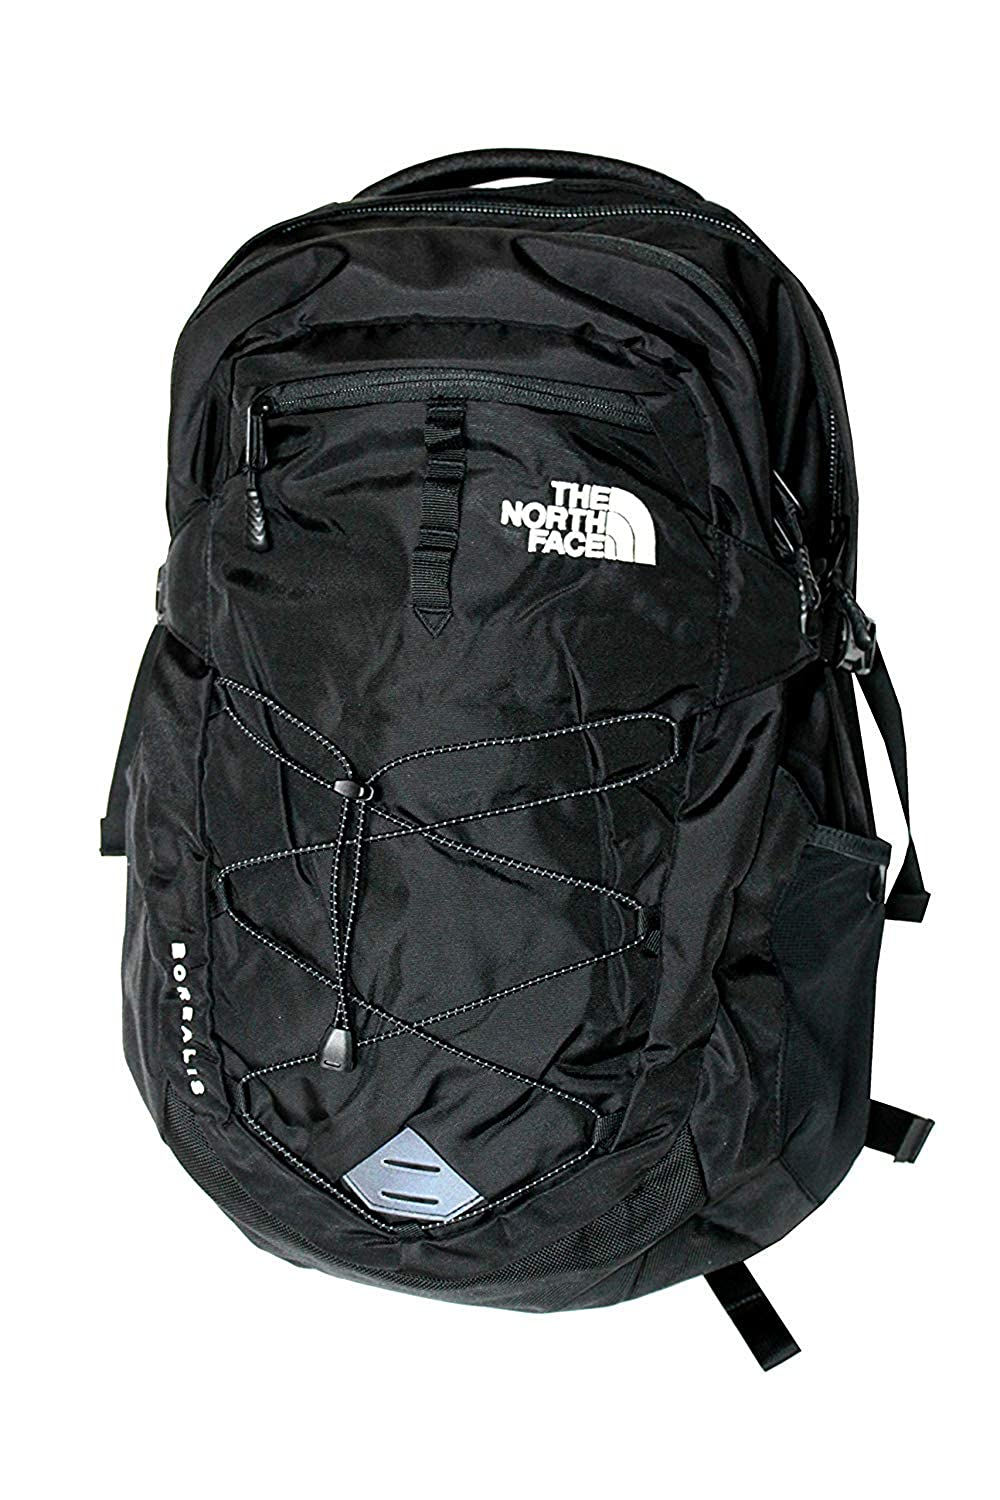 a59447296 The North Face Recon Backpack, TNF Black, One Size